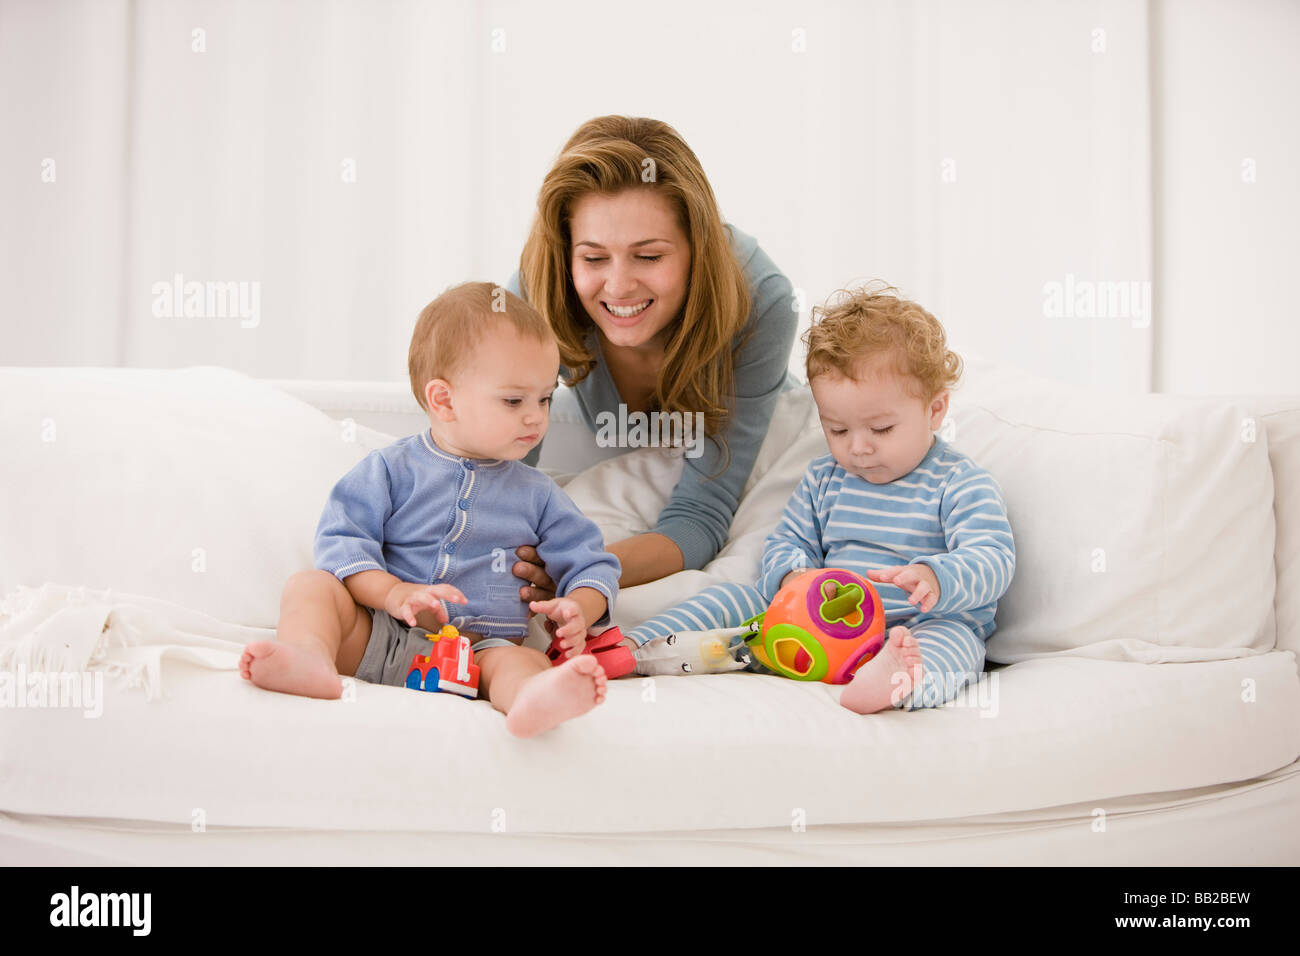 Woman playing with her son and daughter on a couch Stock Photo